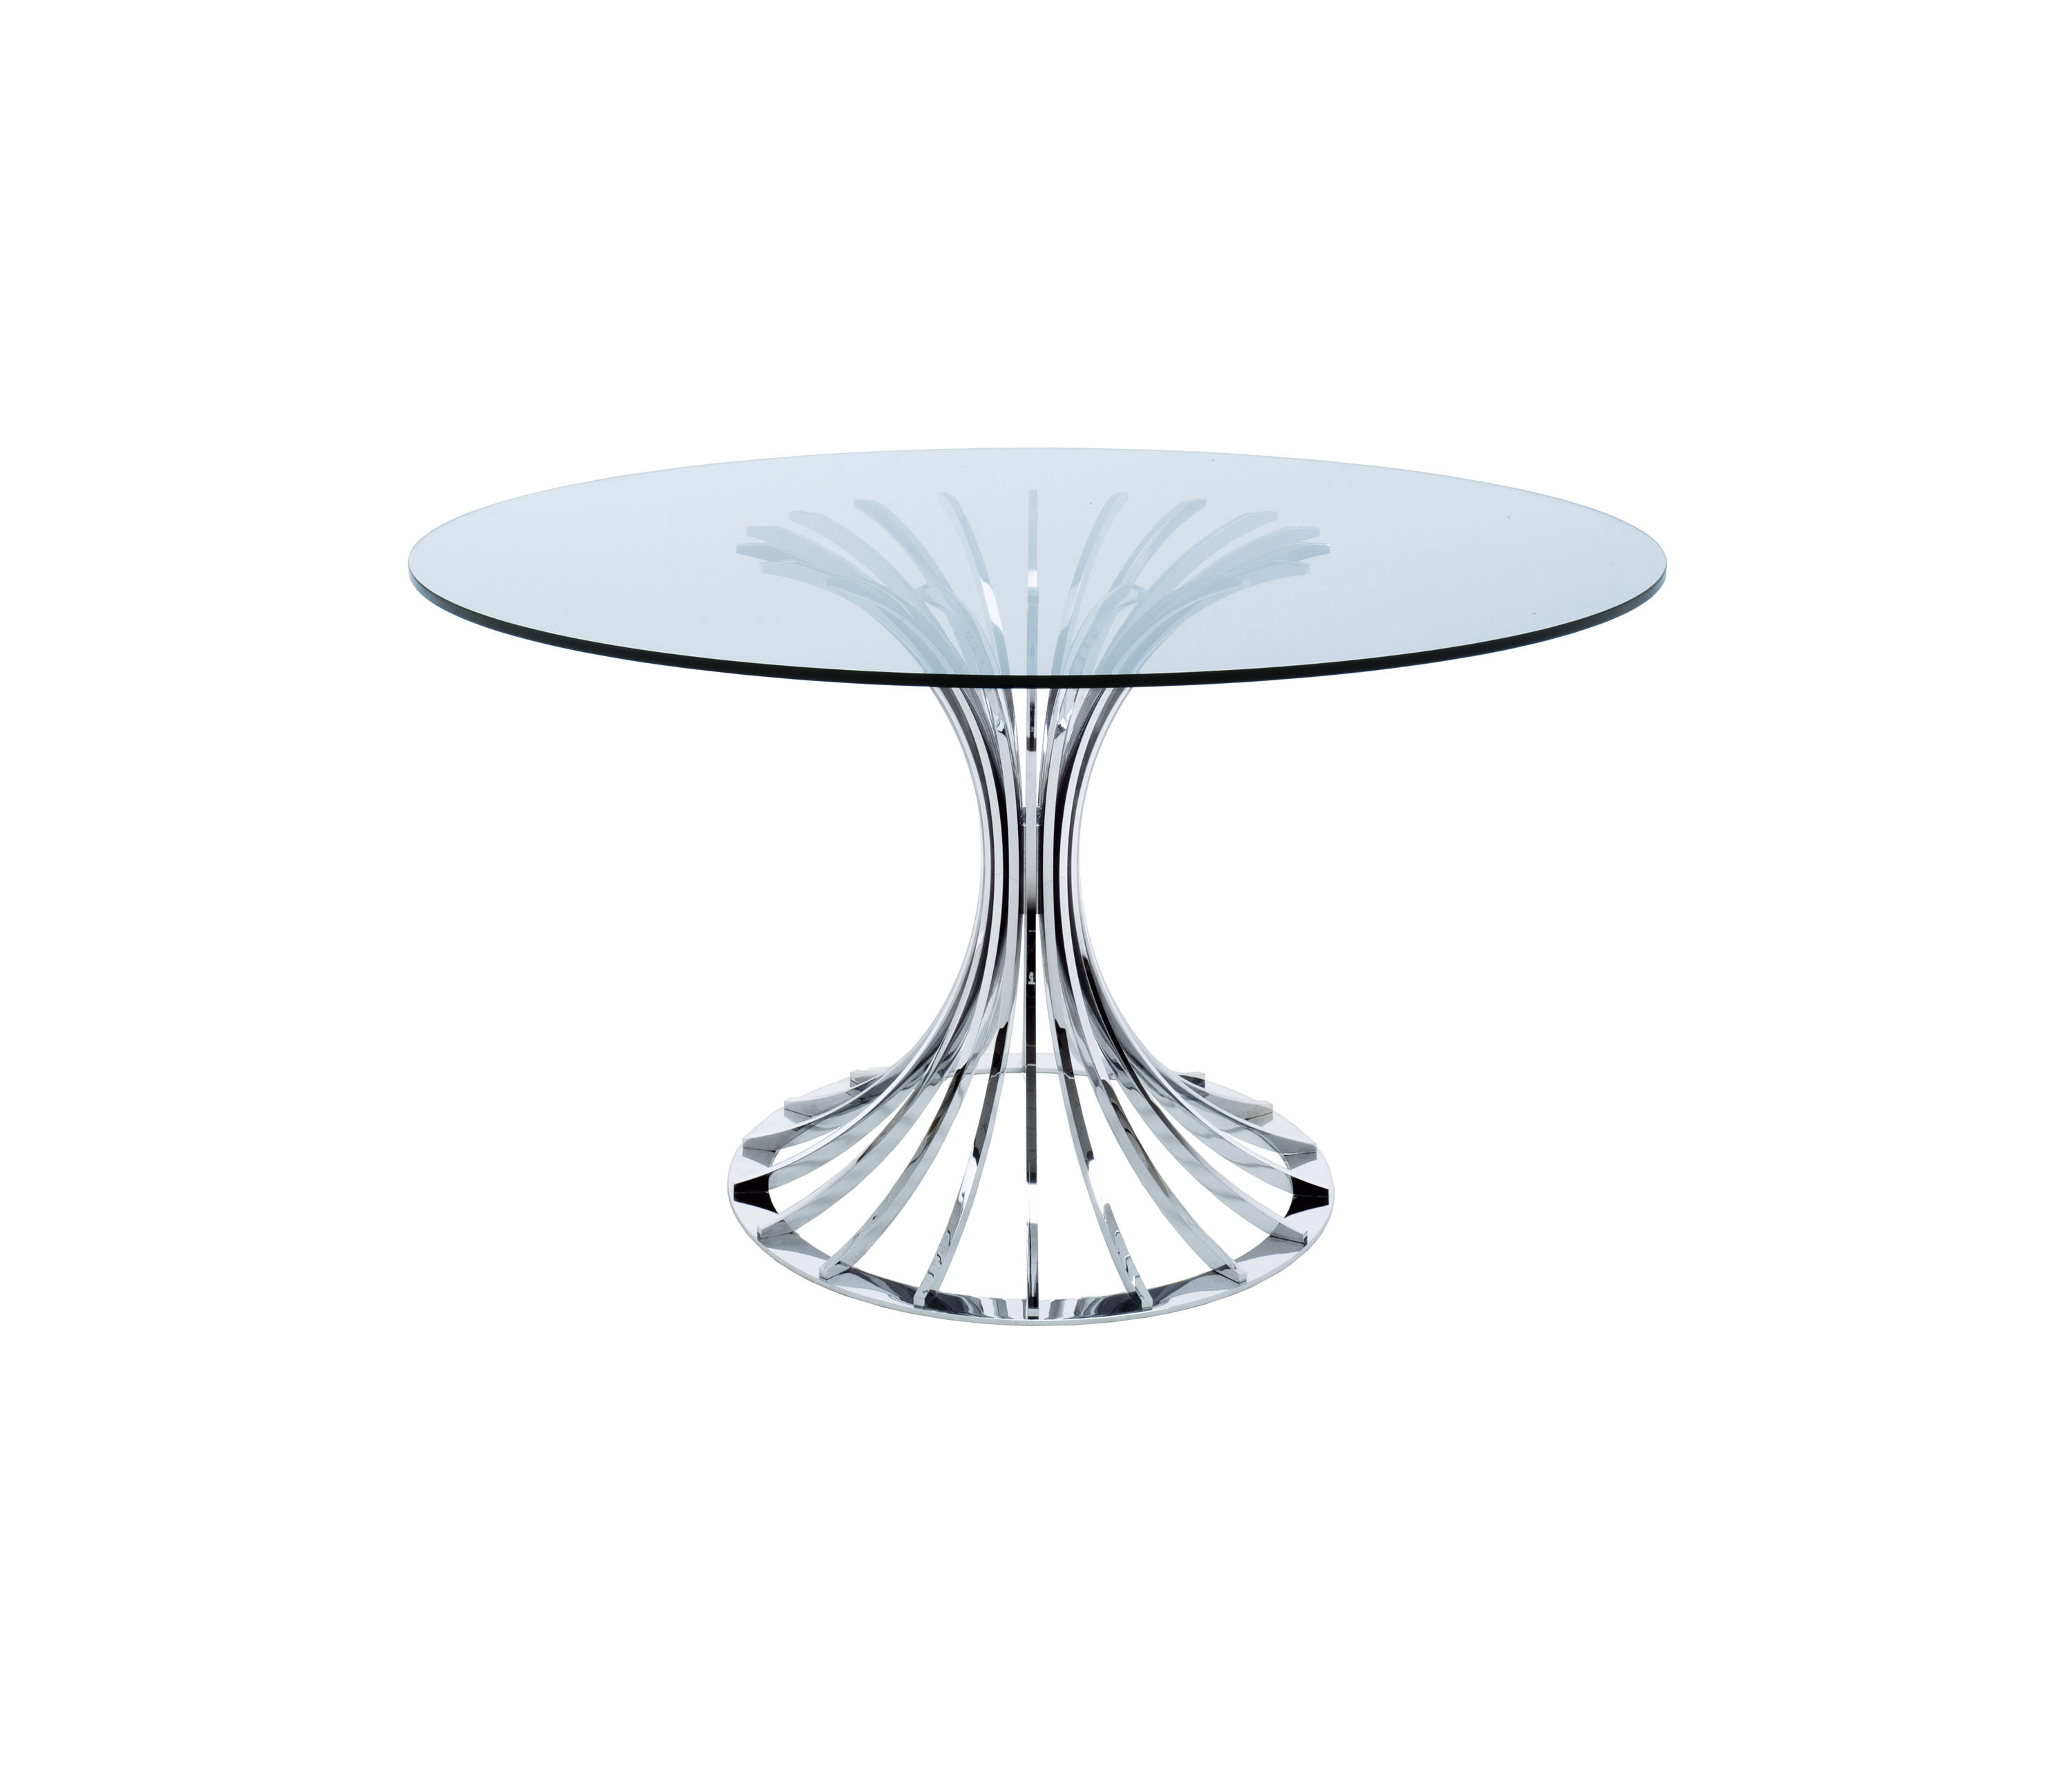 misuraemme furniture. bellafonte dining tables misura emme misuraemme furniture